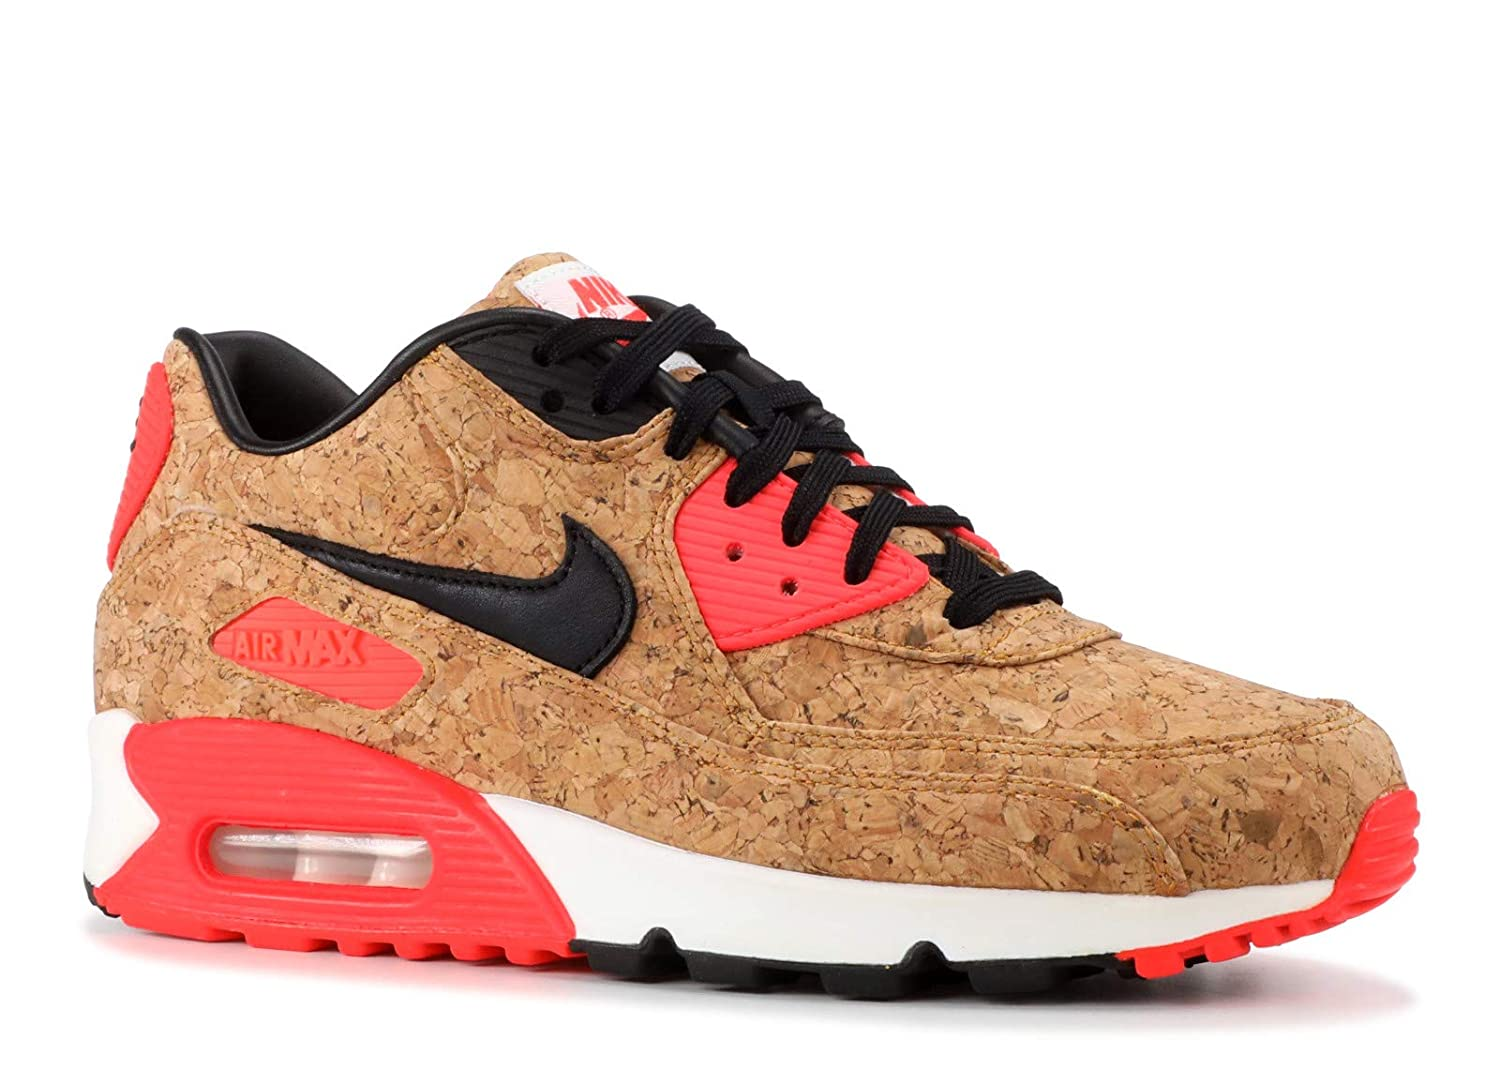 sale retailer 15fc8 41a20 Amazon.com   Nike Air Max 90 Anniversary  Cork  - 725235-706 - Size 13    Road Running